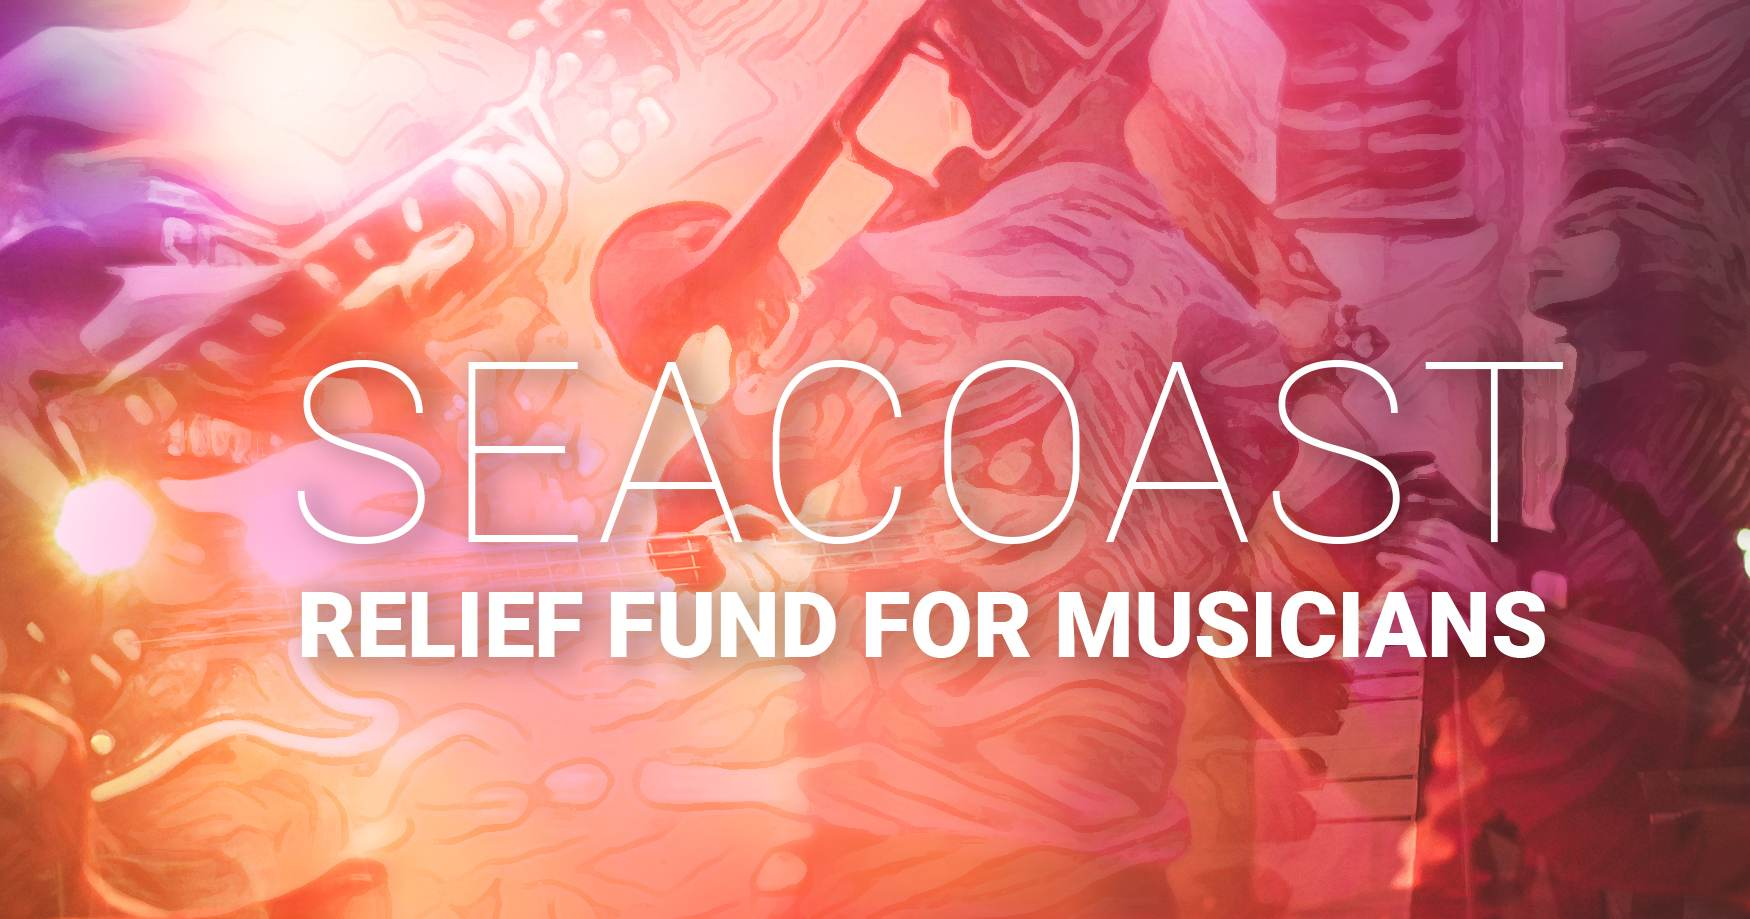 Seacoast Relief Fund